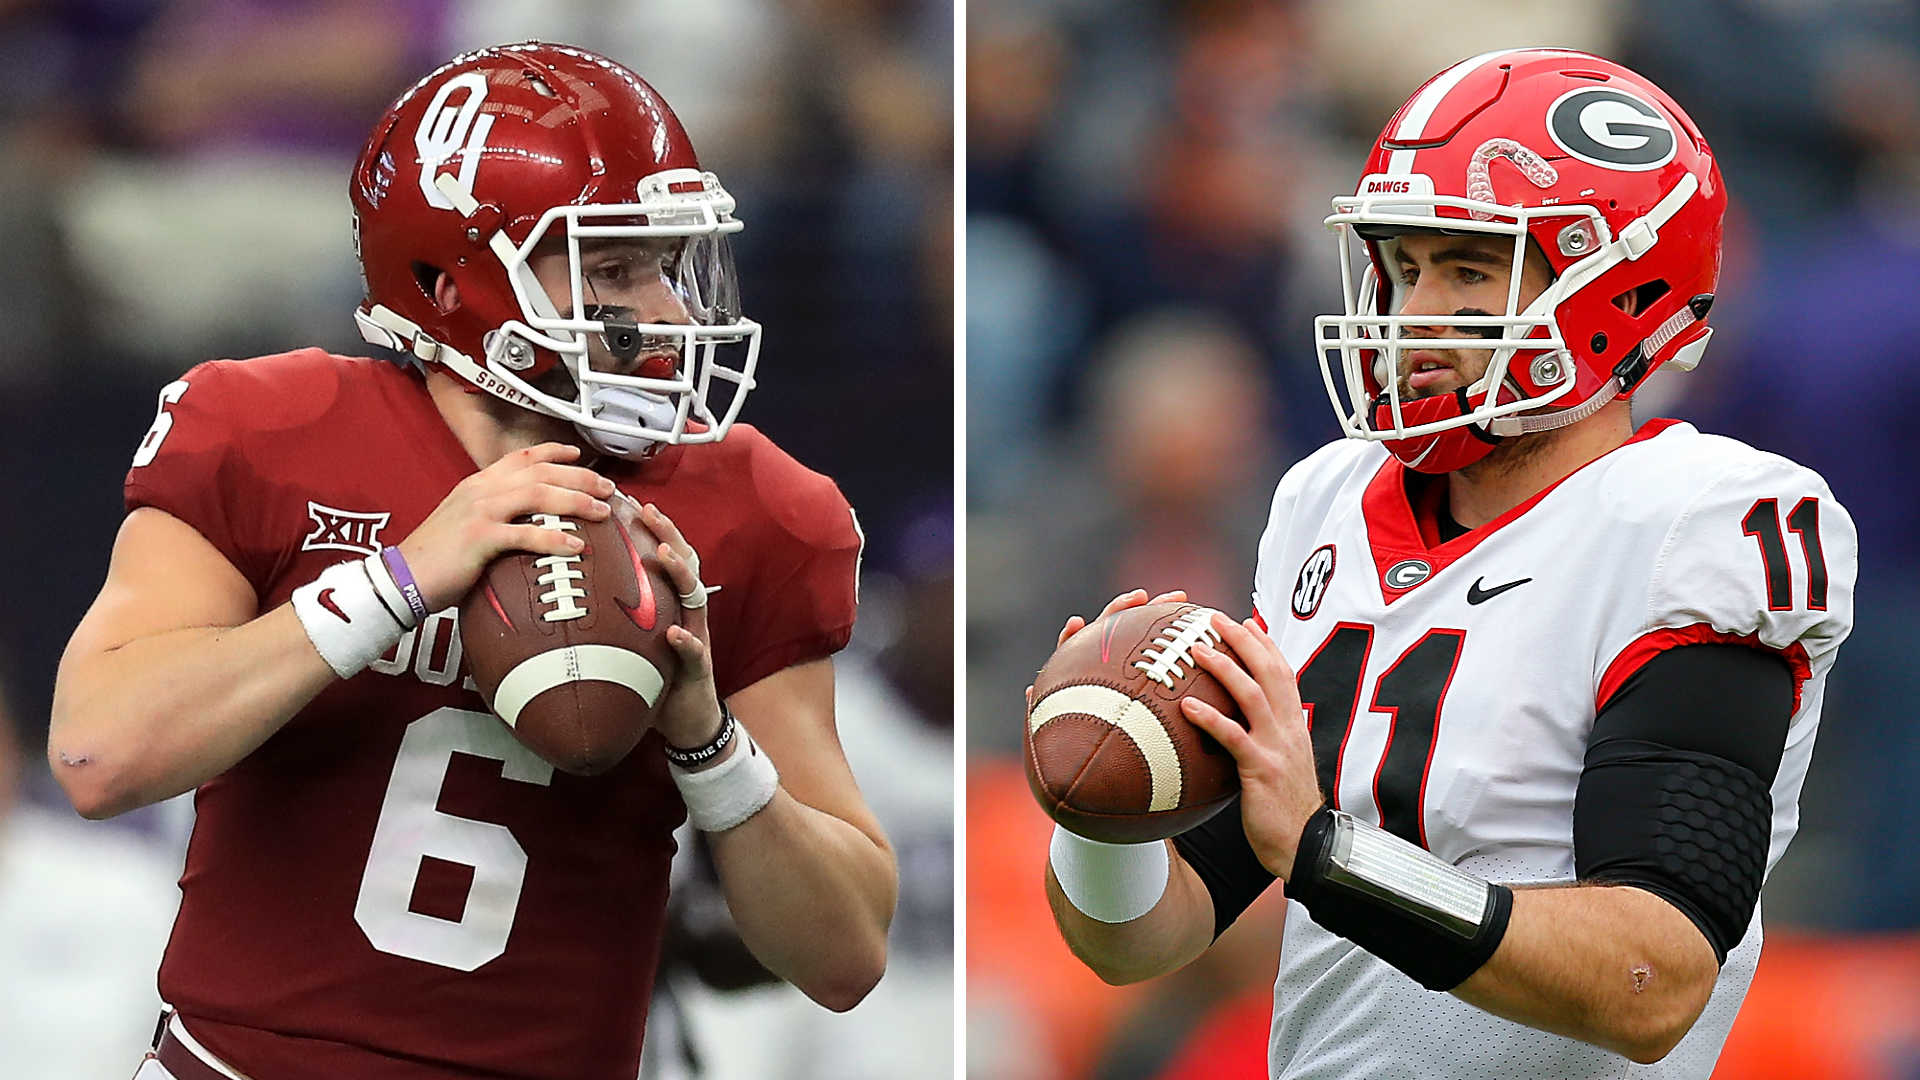 Baker Mayfield >> Georgia vs. Oklahoma: Five numbers that will decide ...